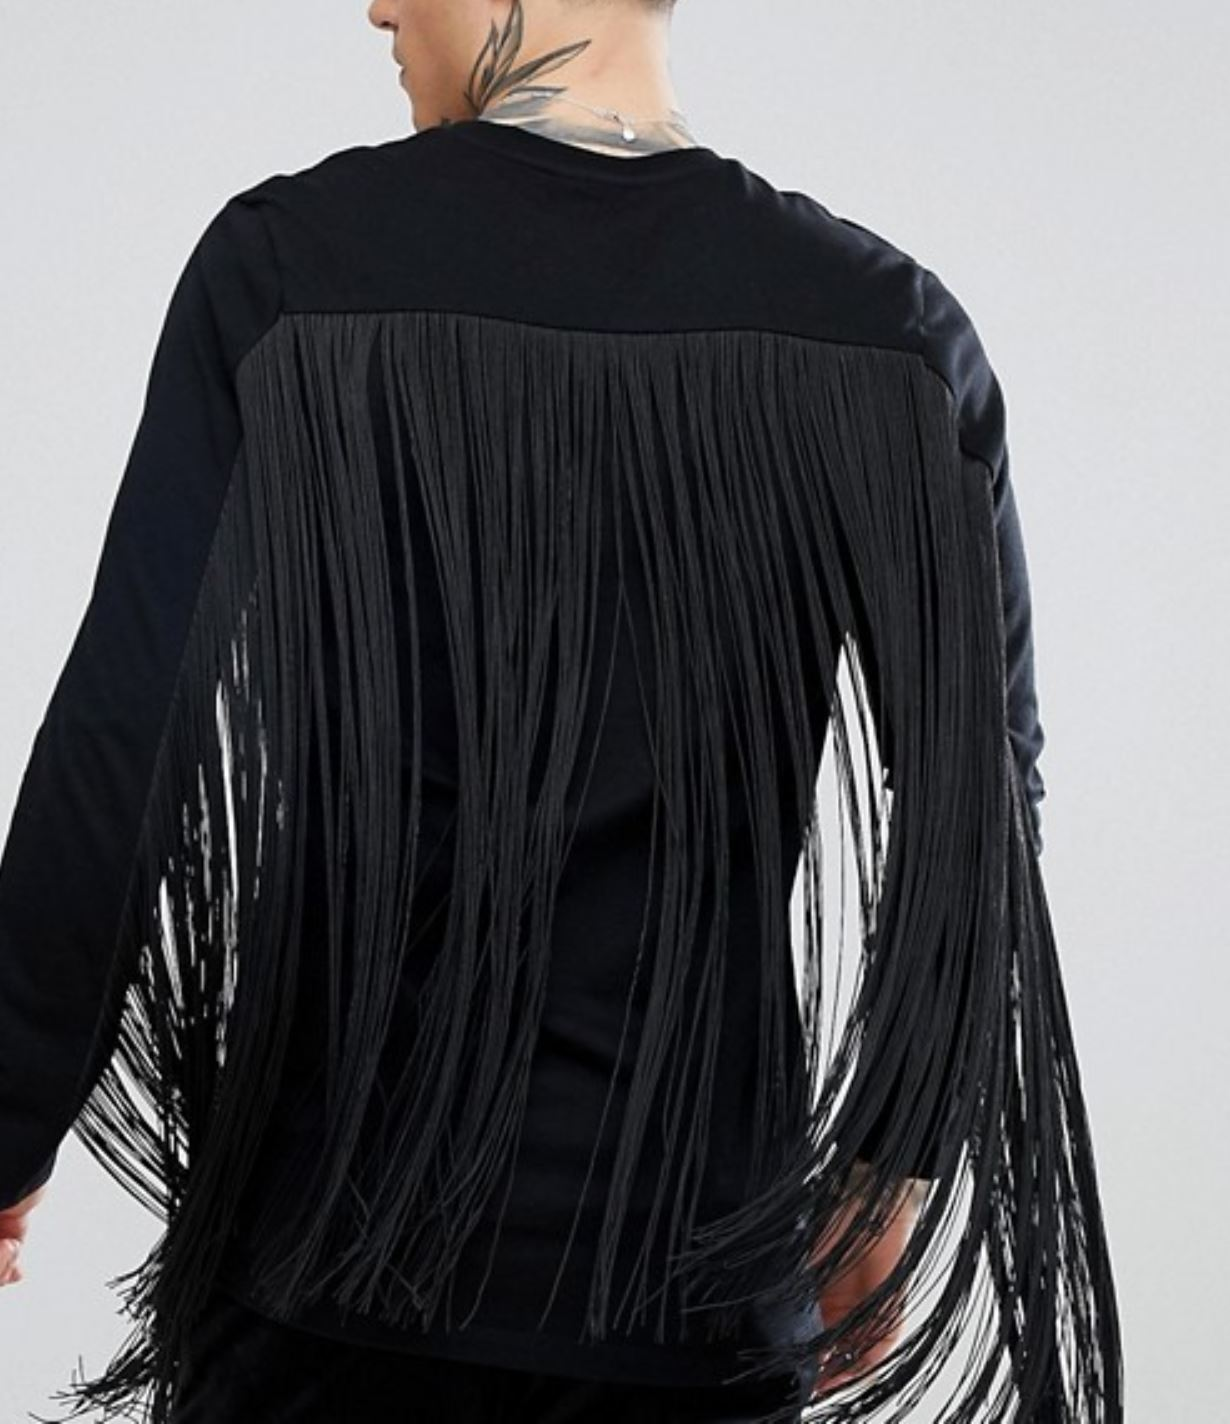 Fringed Black Top from asos.com